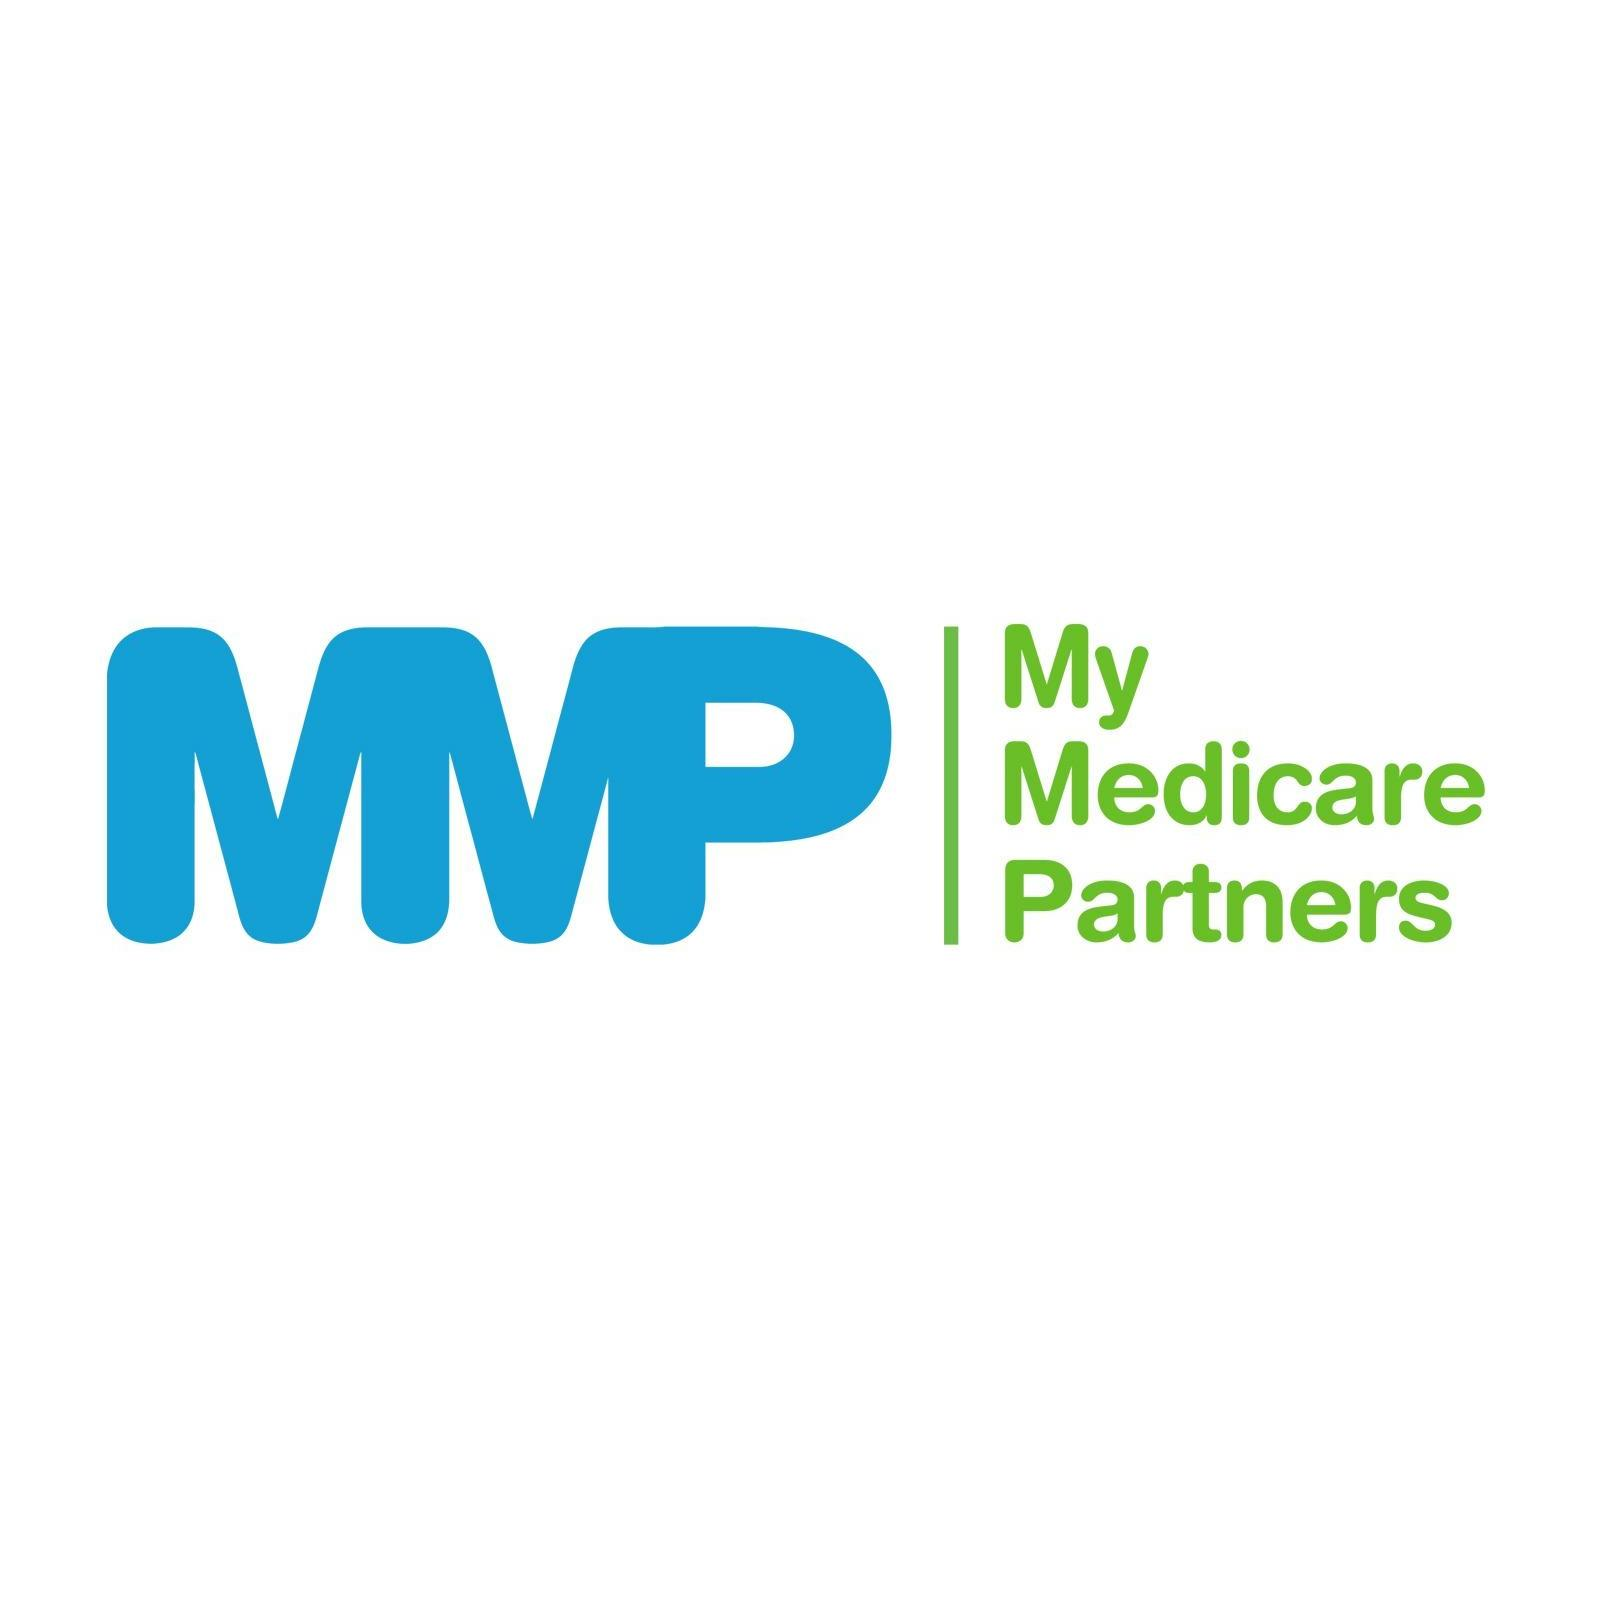 image of My Medicare Partners